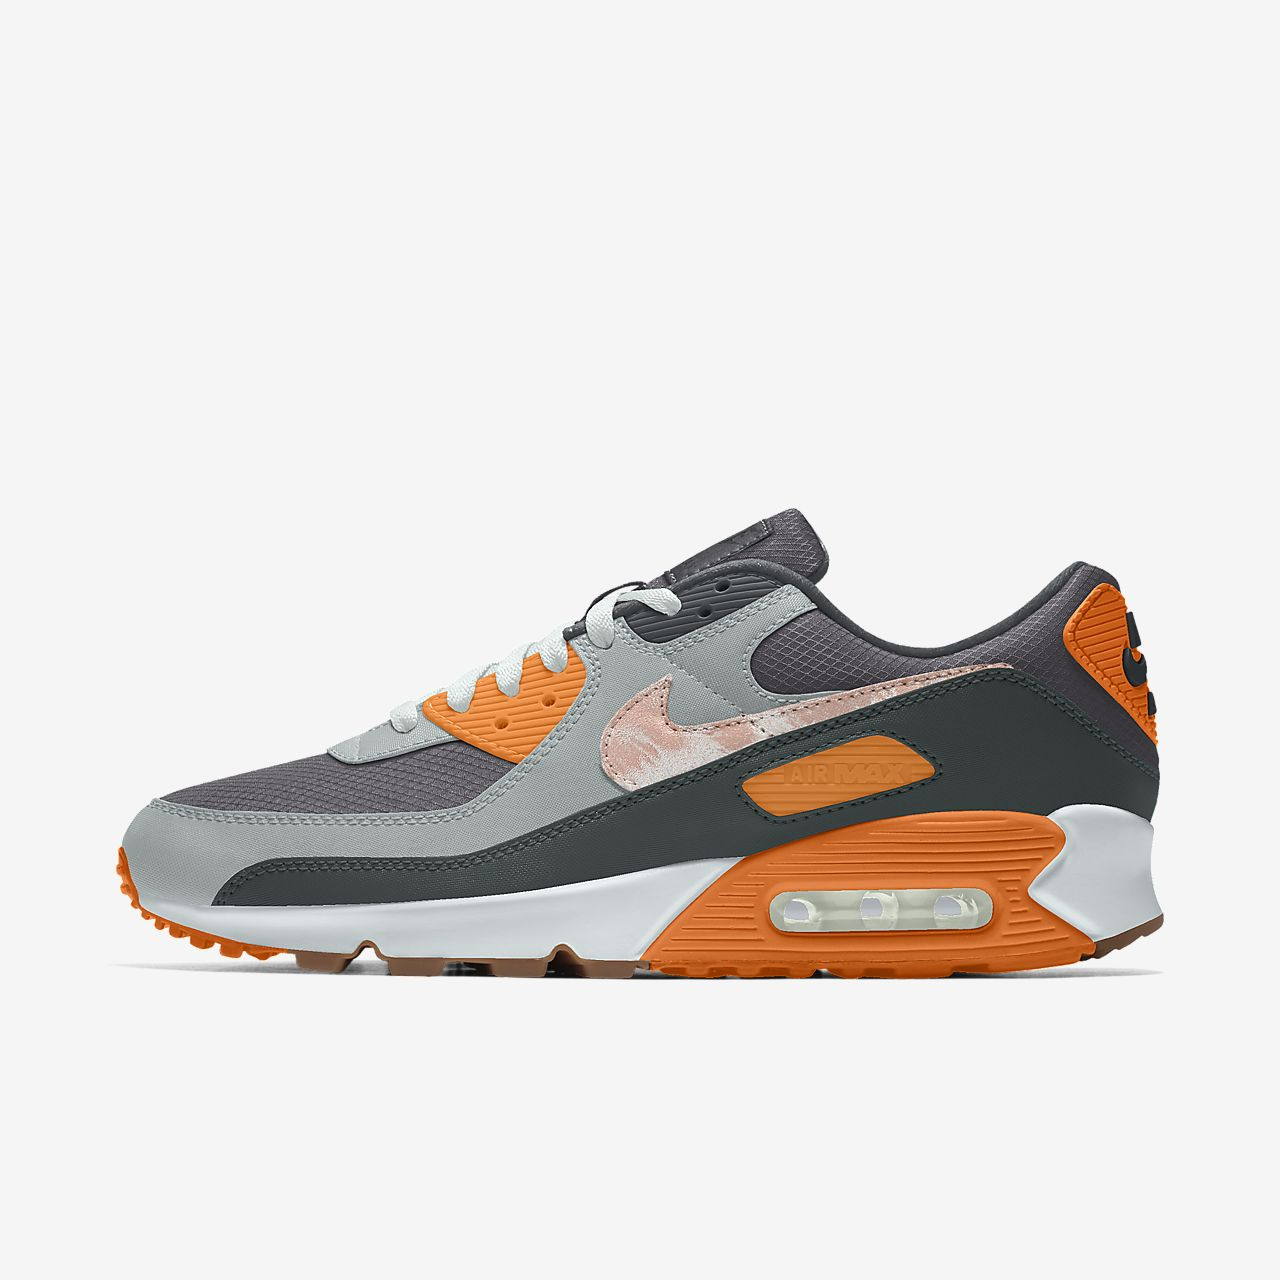 Nike Air Max 90 Unlocked By You 專屬訂製男鞋